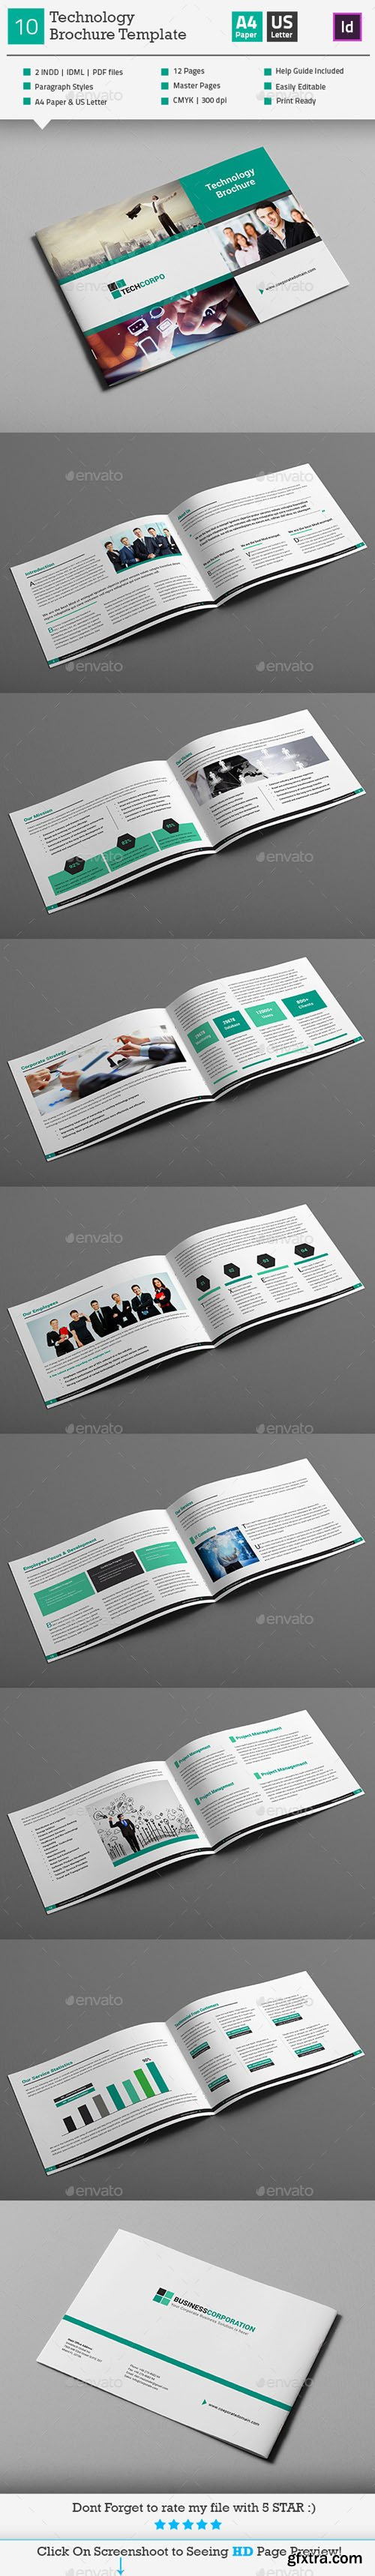 GraphicRiver Technology Landscape Brochure Template_V10 / 11030221